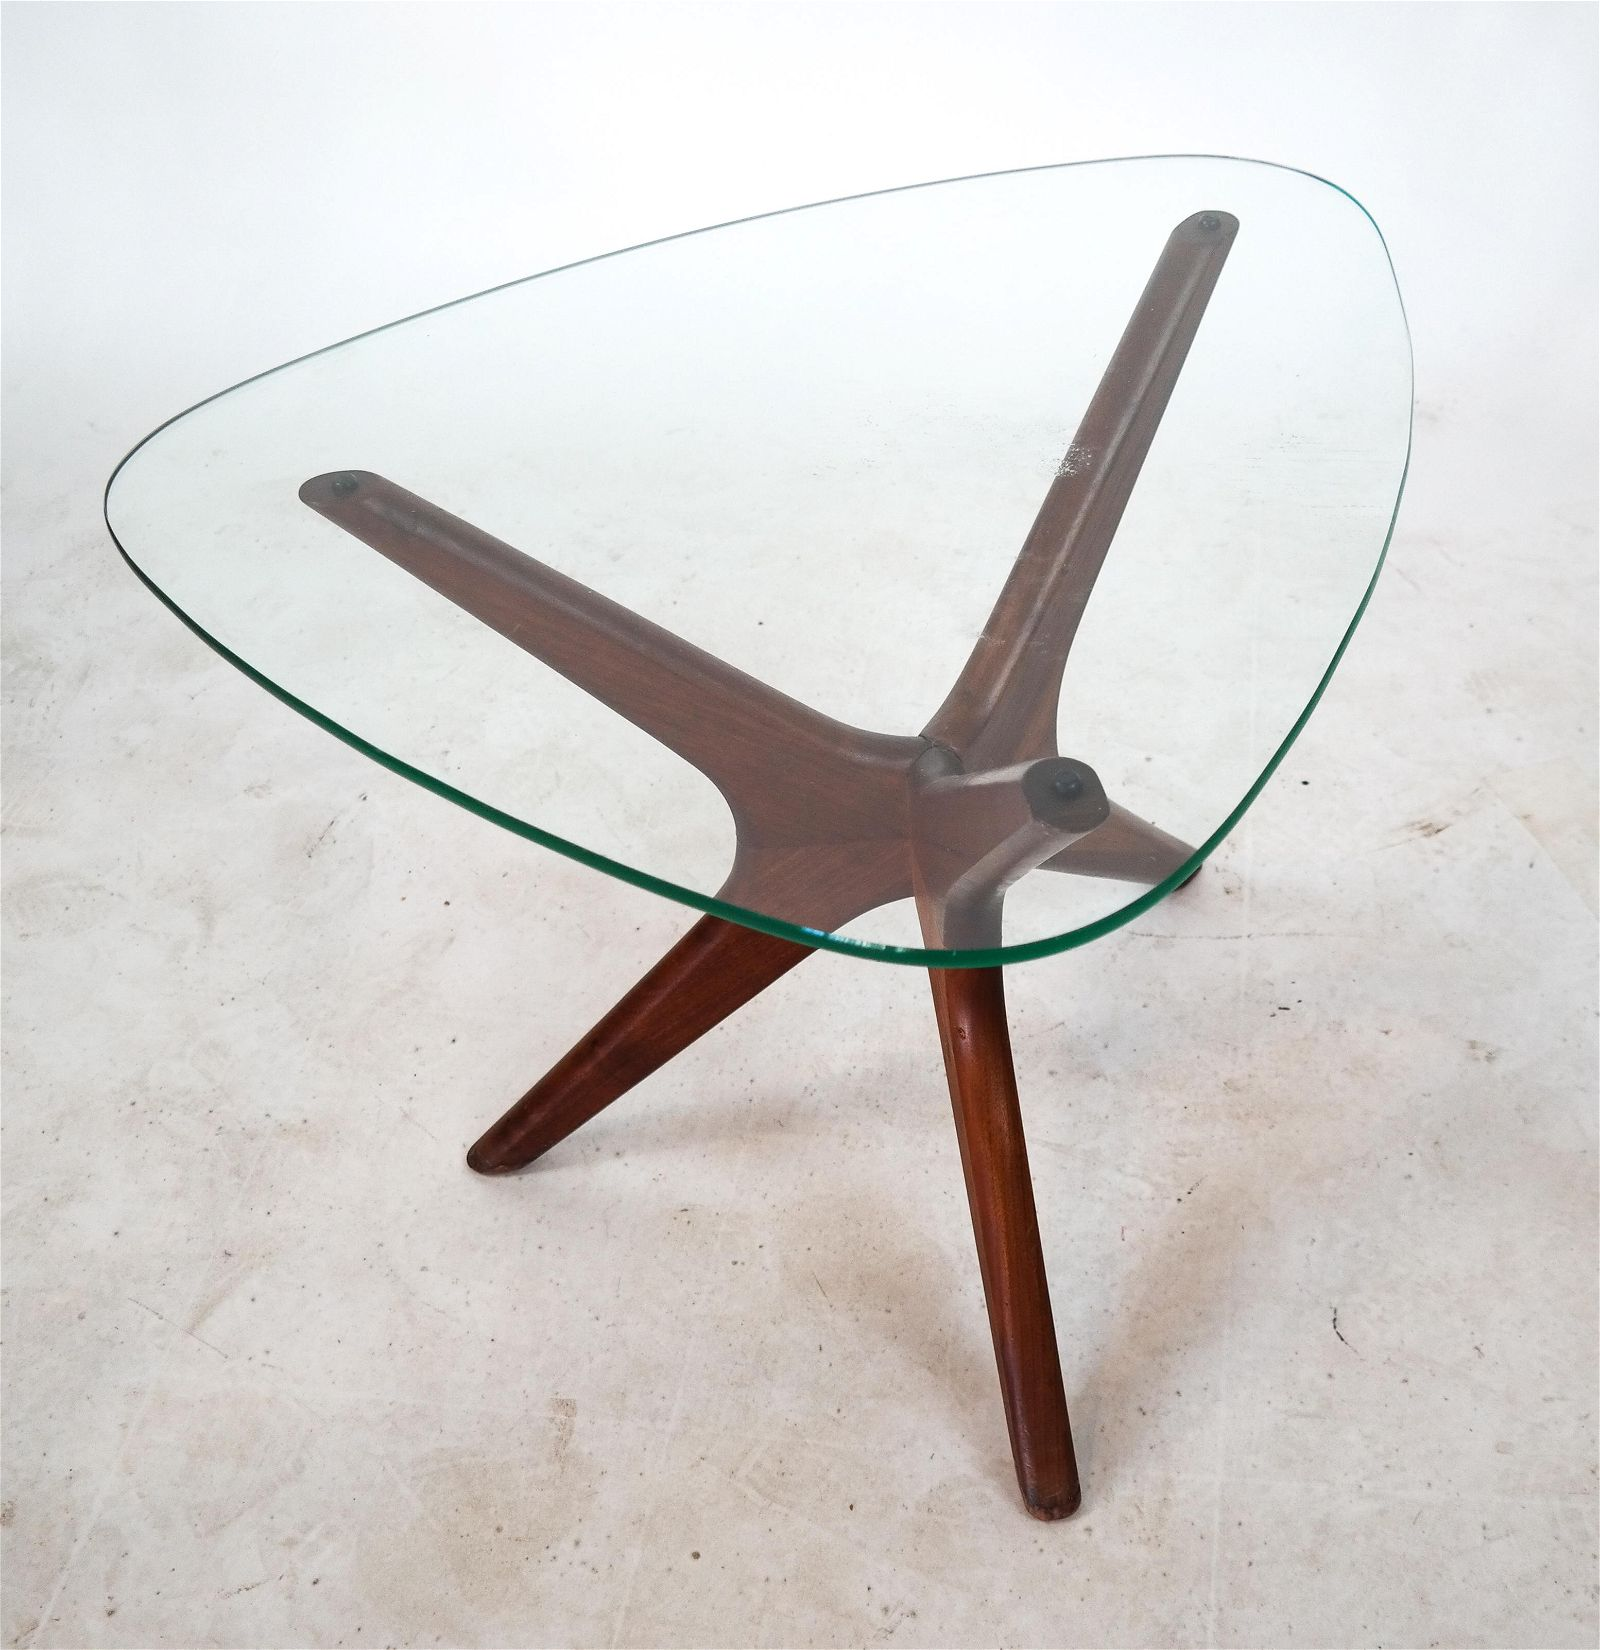 Adrian Pearsall Guitar Pick Glass Top Table Mar 07 2020 Roland Ny In Ny